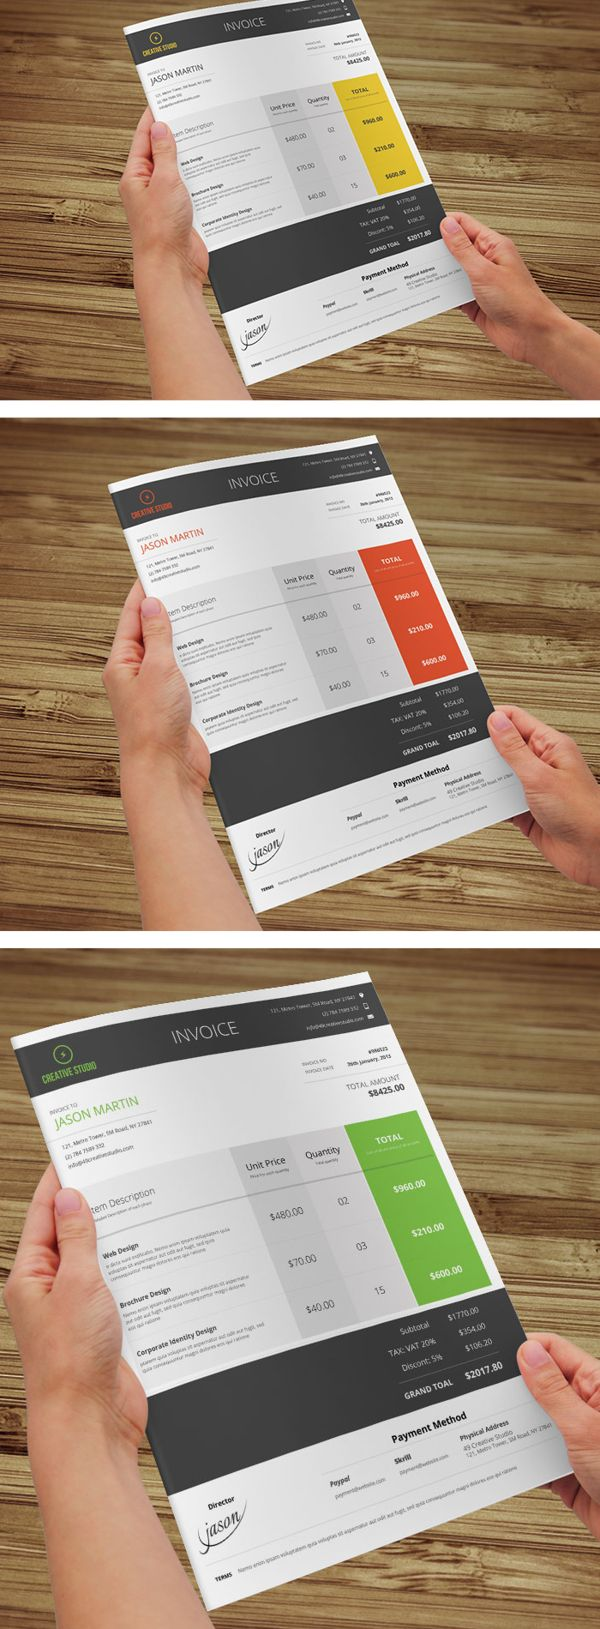 In Kind Receipt Best  Invoice Sample Ideas On Pinterest  Invoice Example Http  Make A Receipt Excel with Tenant Rent Receipt Template Pdf  Creative Invoice Template Designs Sales Receipts Templates Word